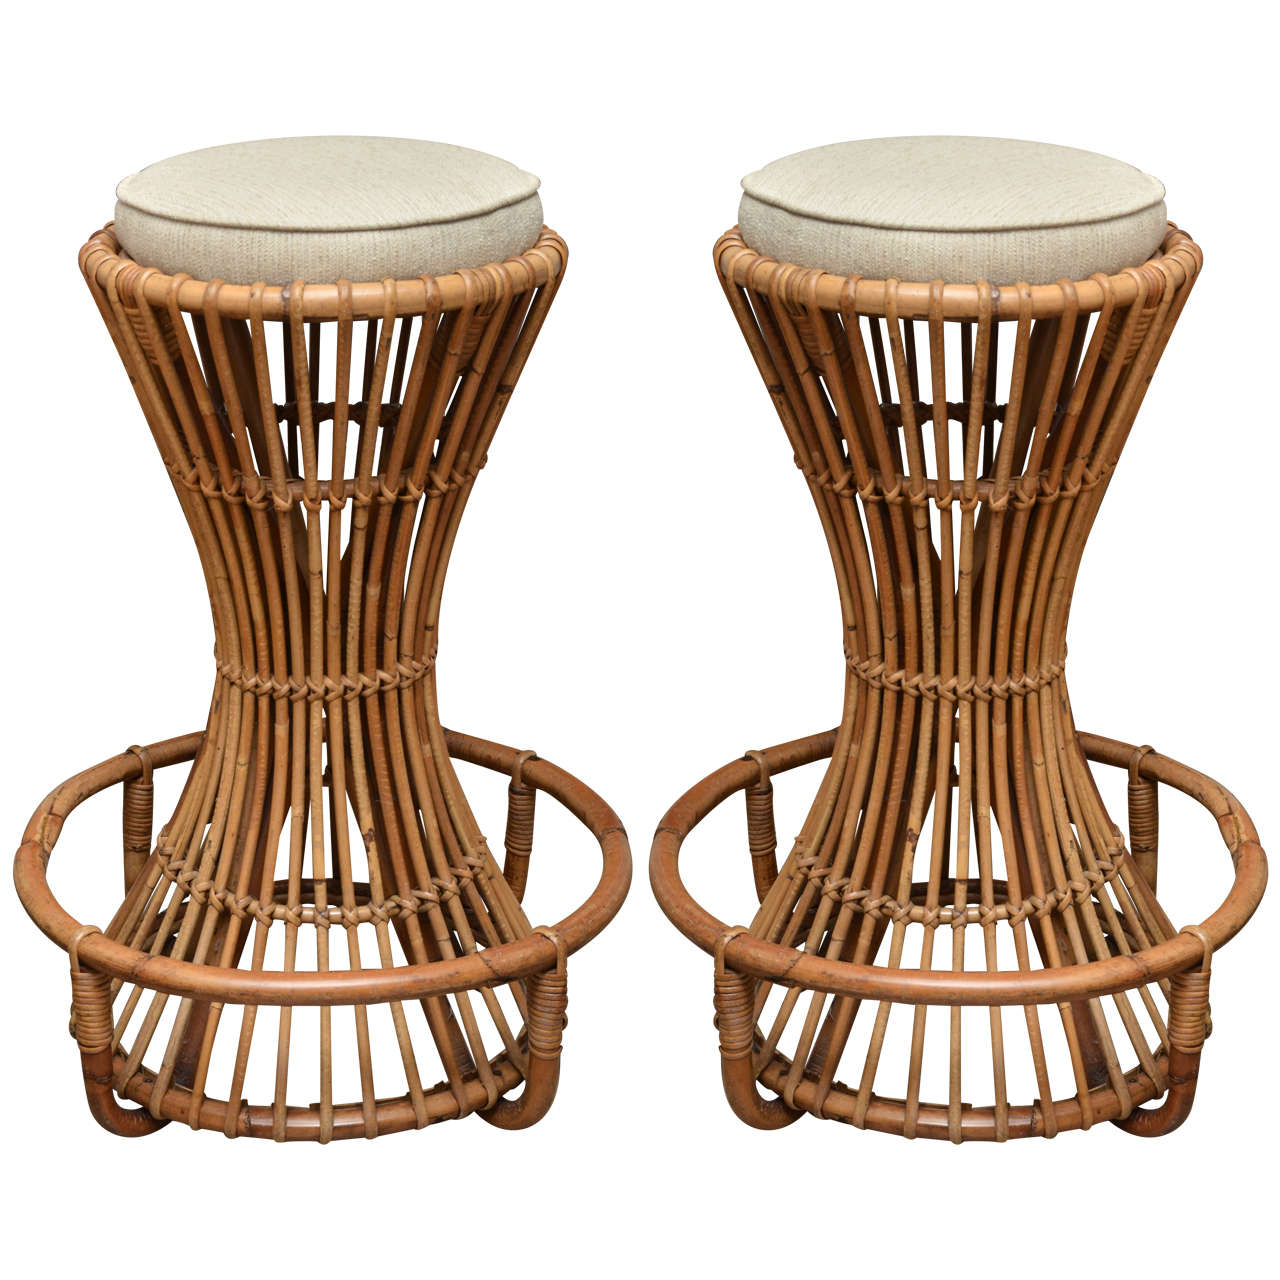 Pair of Bamboo Bar Stools by Tito Agnoli 1  sc 1 st  1stDibs & Pair of Bamboo Bar Stools by Tito Agnoli at 1stdibs islam-shia.org